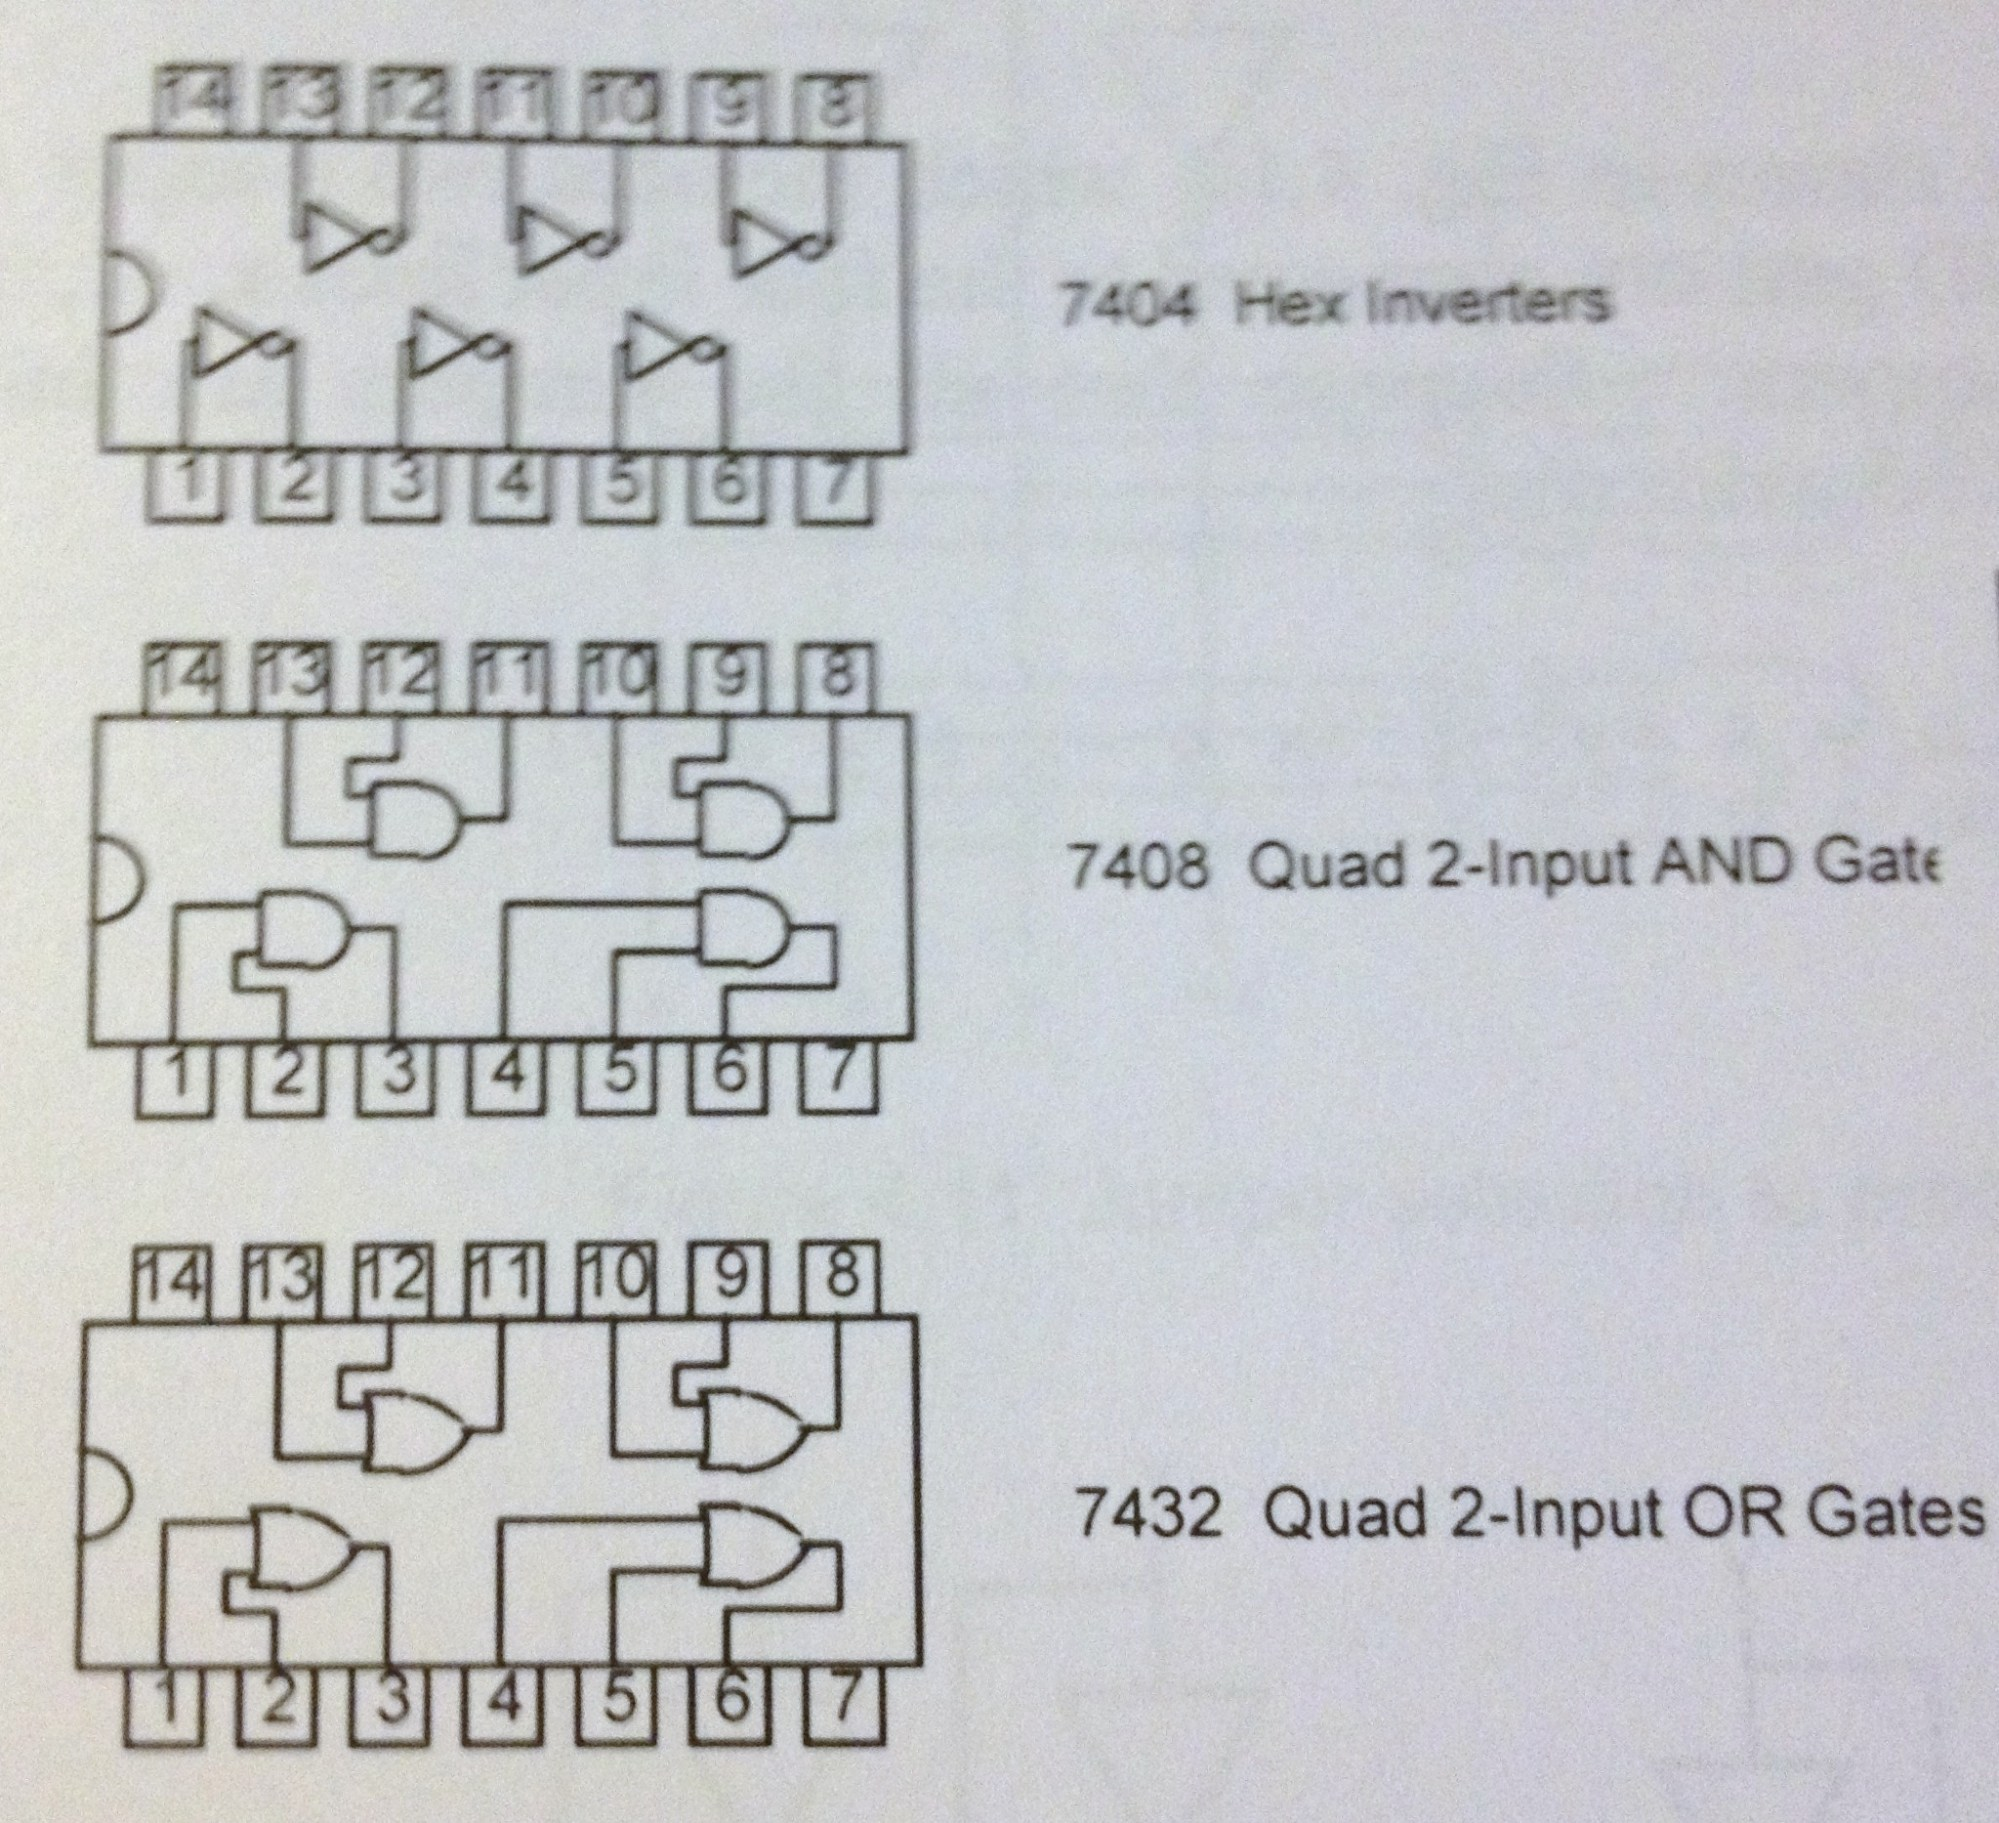 hight resolution of ttl chips for the three basic gates